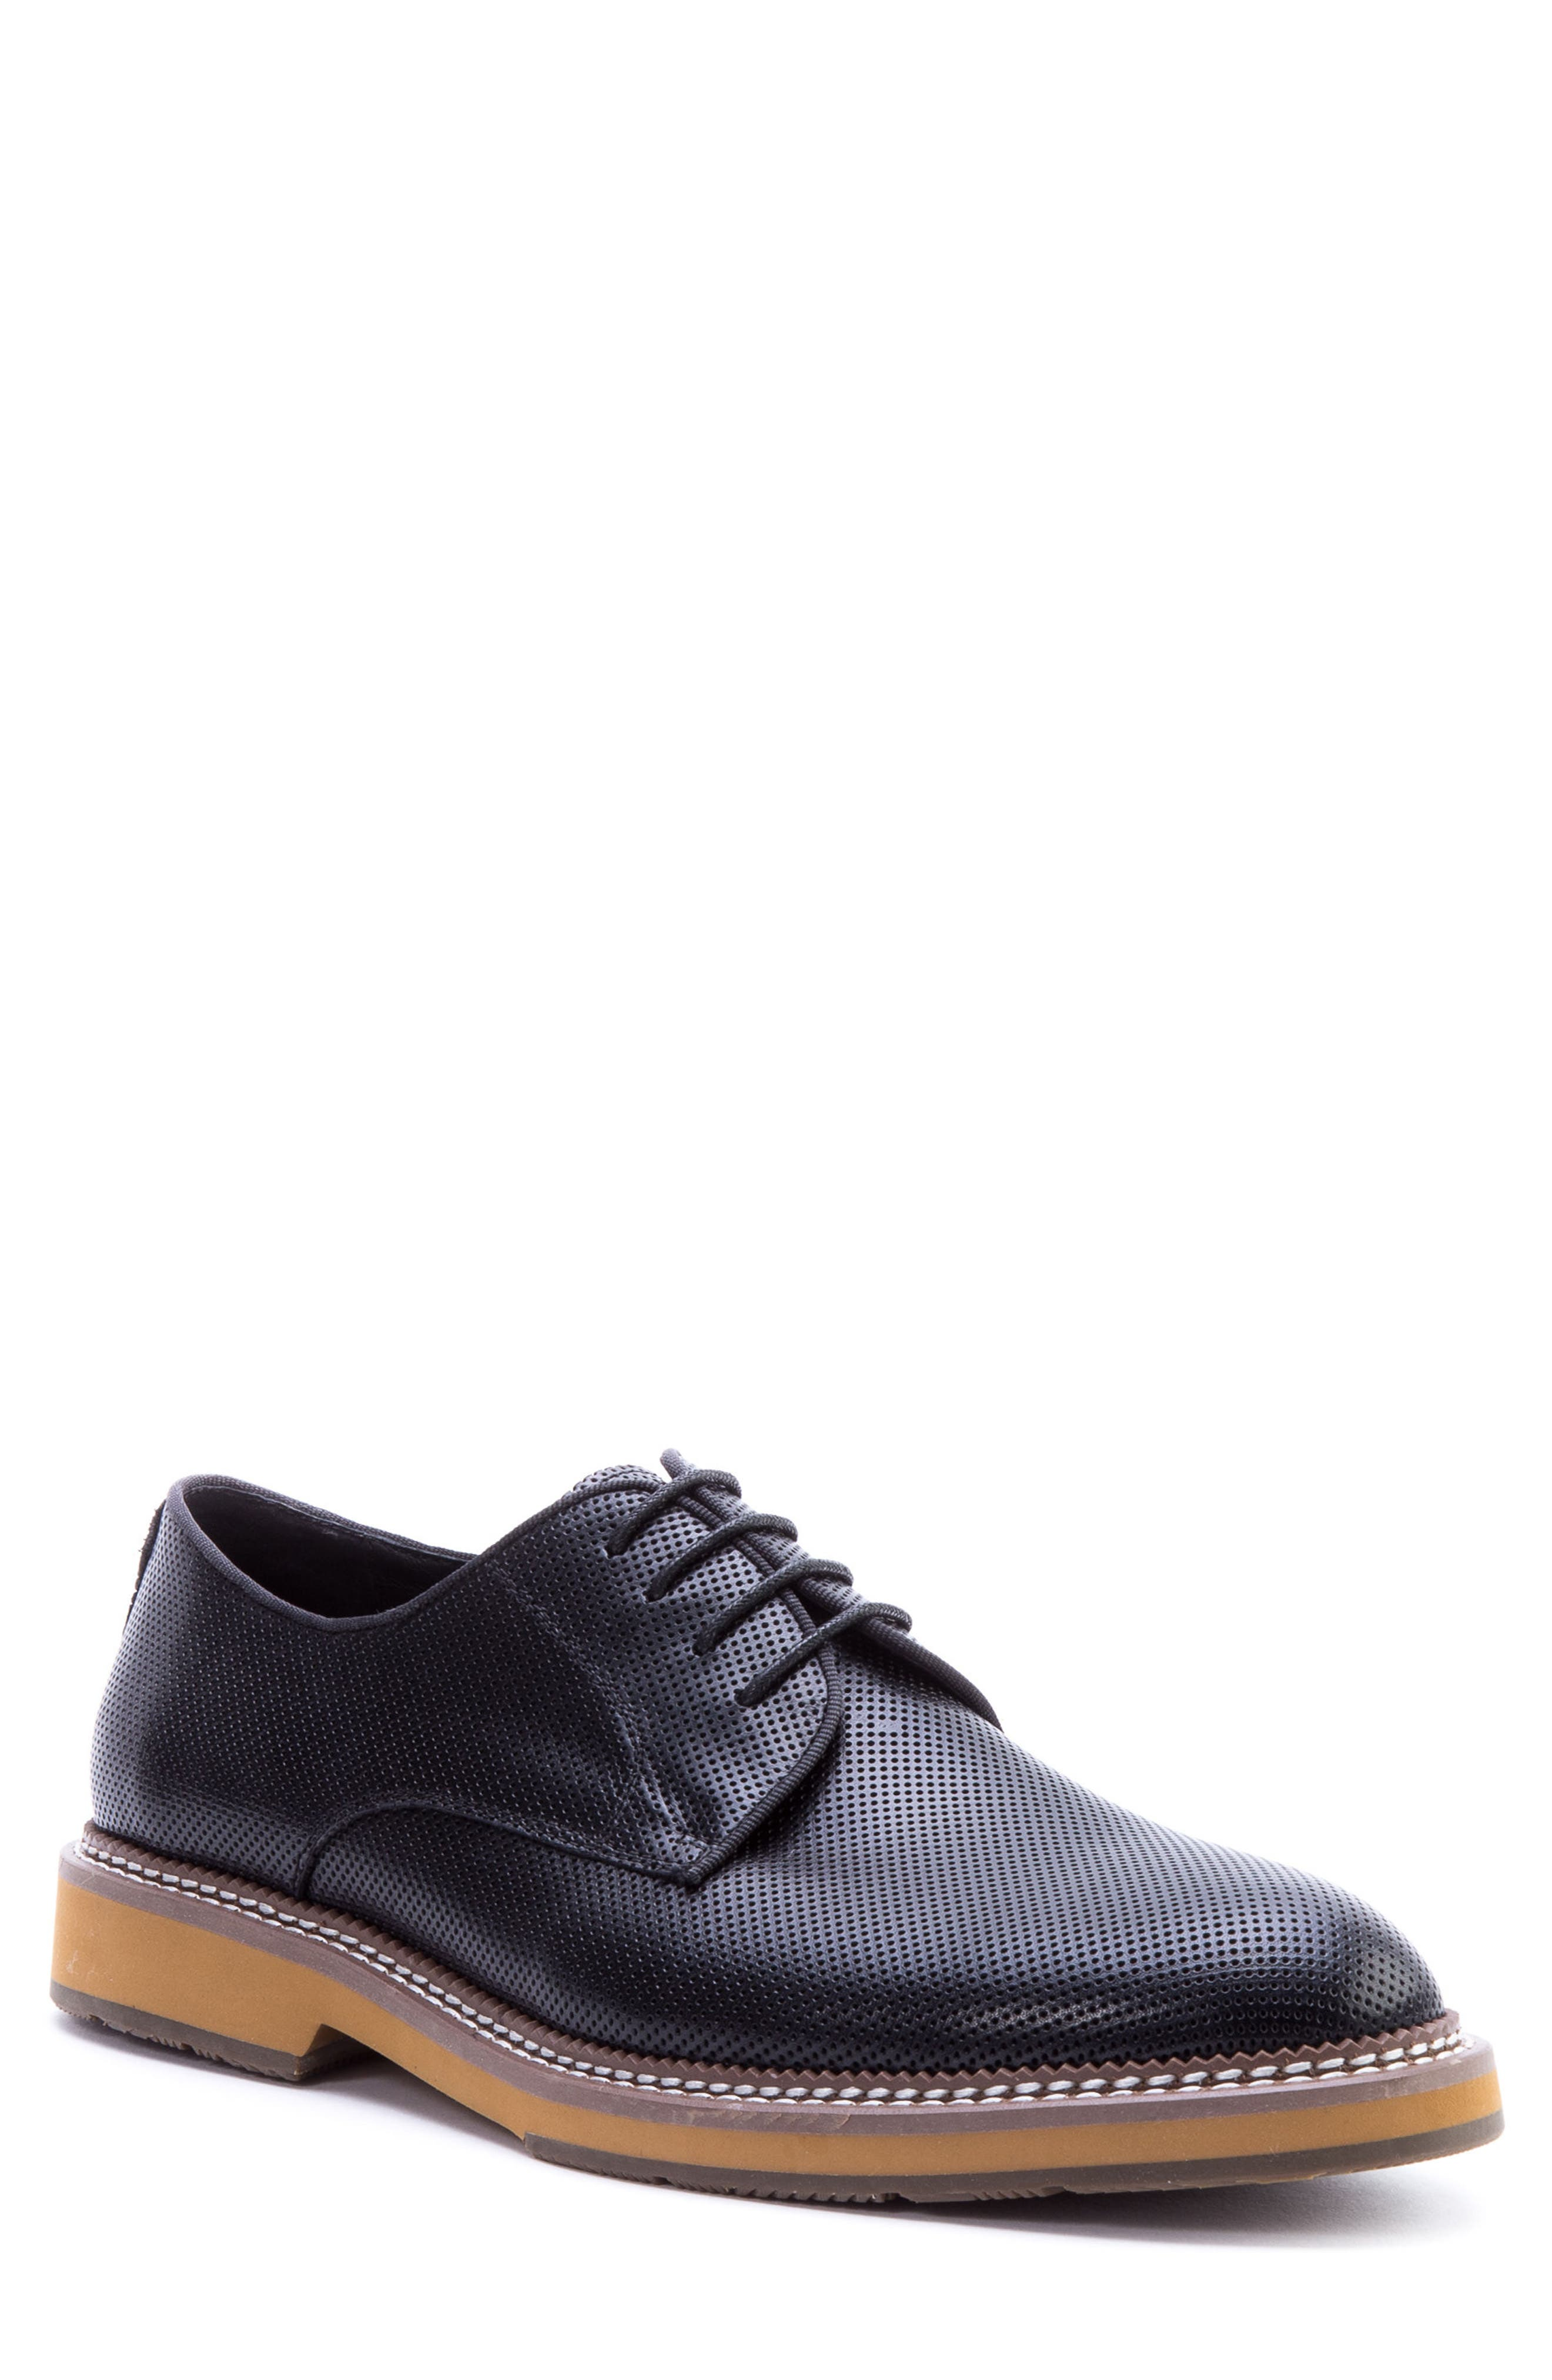 Monticello Perforated Plain Toe Derby,                         Main,                         color, BLACK LEATHER